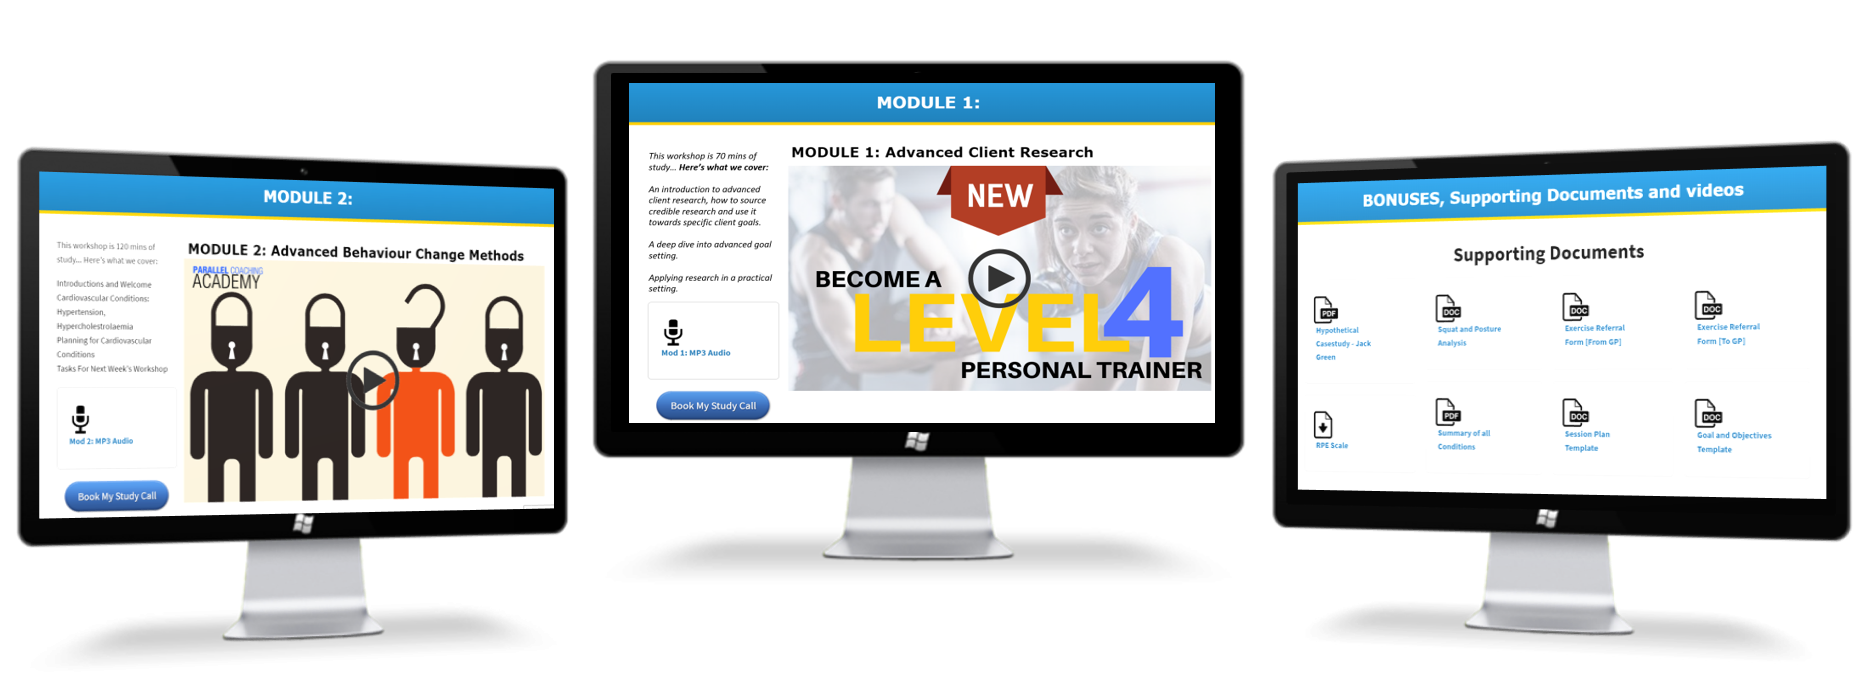 412ccf744f4 When does the course start  The Level 4 Advanced Personal Trainer can be  started anytime with instant and lifetime access to the Parallel Coaching  Academy.